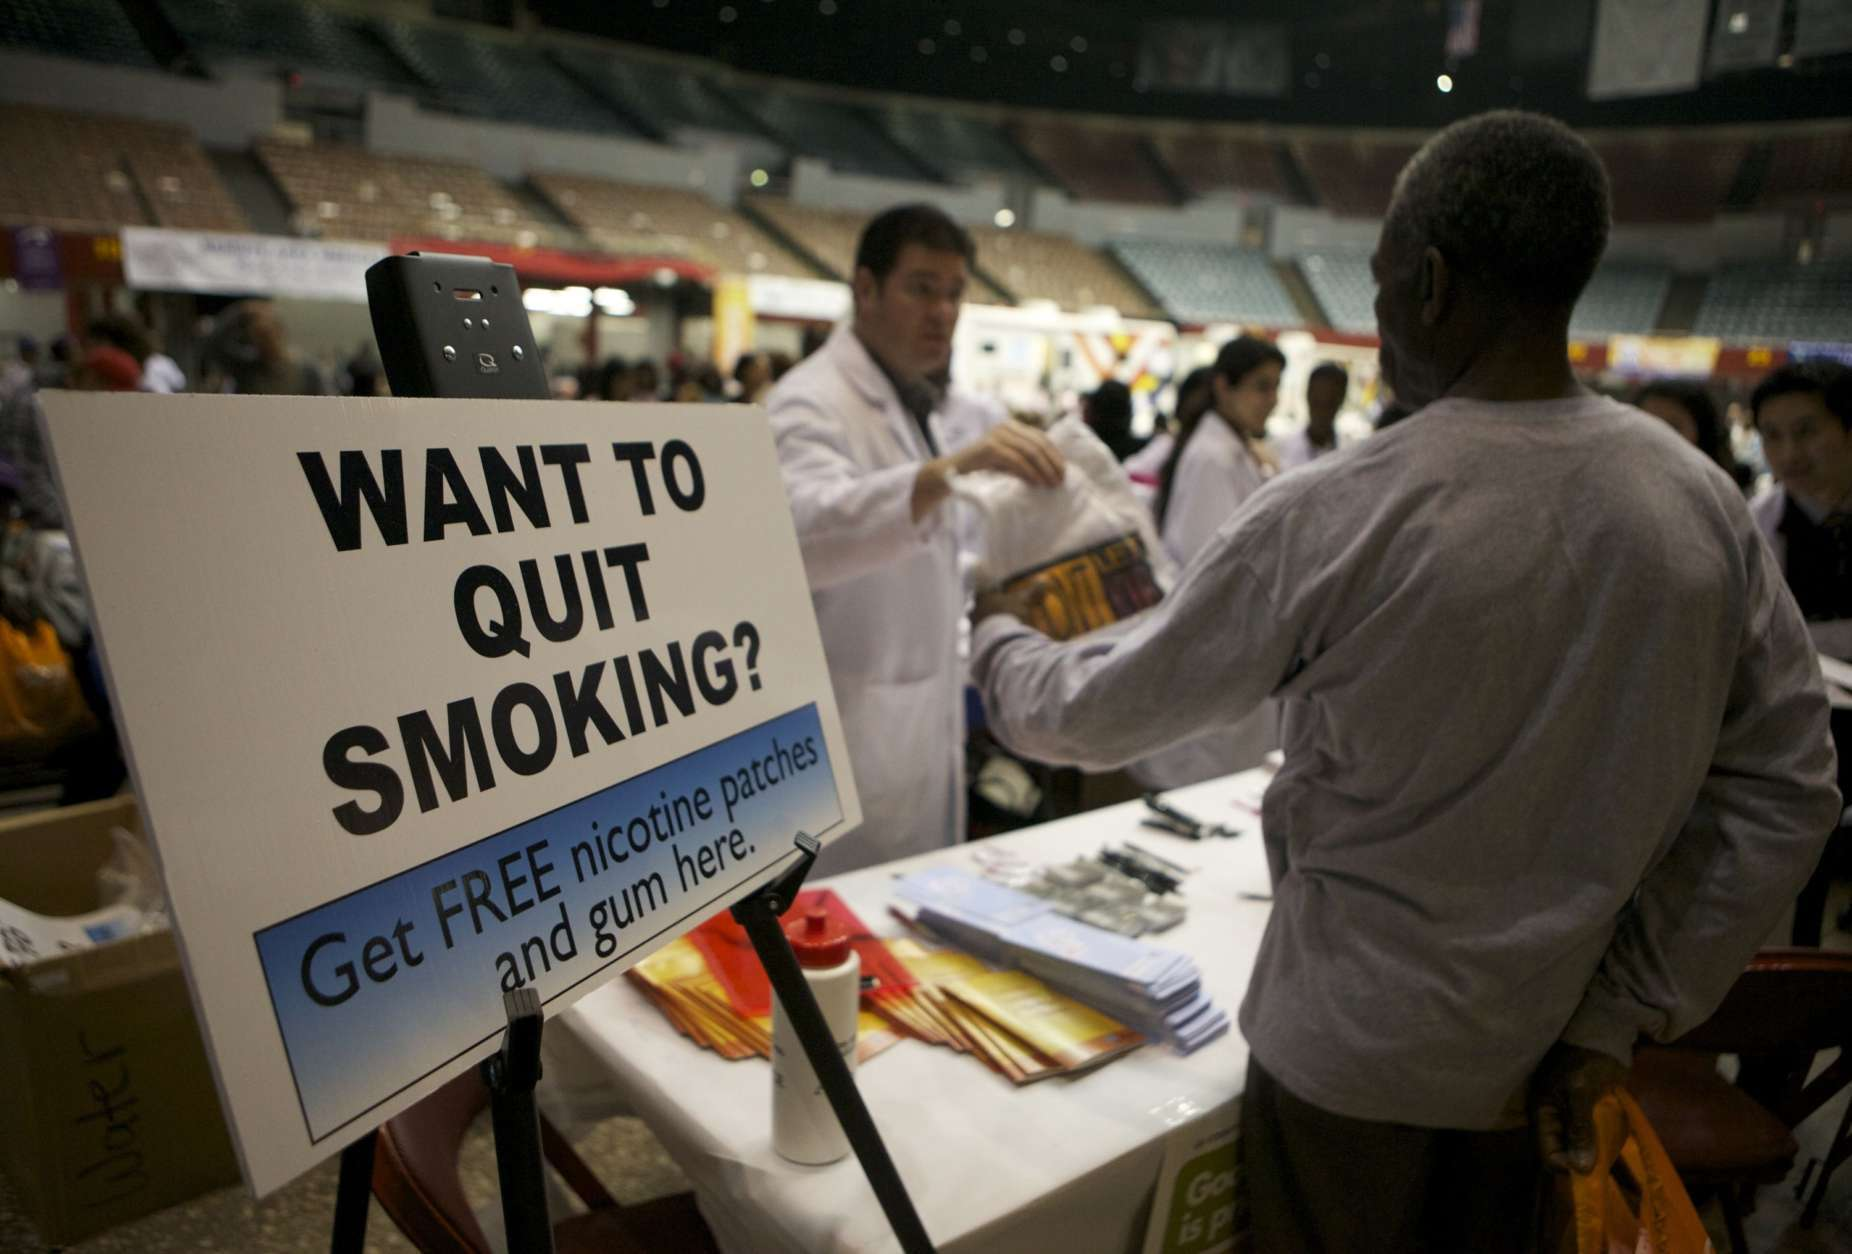 Smokers without medical insurance receive free nicotine patches and gum at the Remote Area Medical (RAM) clinic inside the Los Angeles Sports Arena in Los Angeles on Tuesday, April 27, 2010. The free health clinic opened its doors Tuesday to thousands of patients clamoring for dental, vision and medical care. Patients registered in advance to see doctors at the event, which is being run by the Tennessee-based nonprofit group Remote Area Medical. The clinic expects to serve about 1,200 patients a day. (AP Photo/Damian Dovarganes)